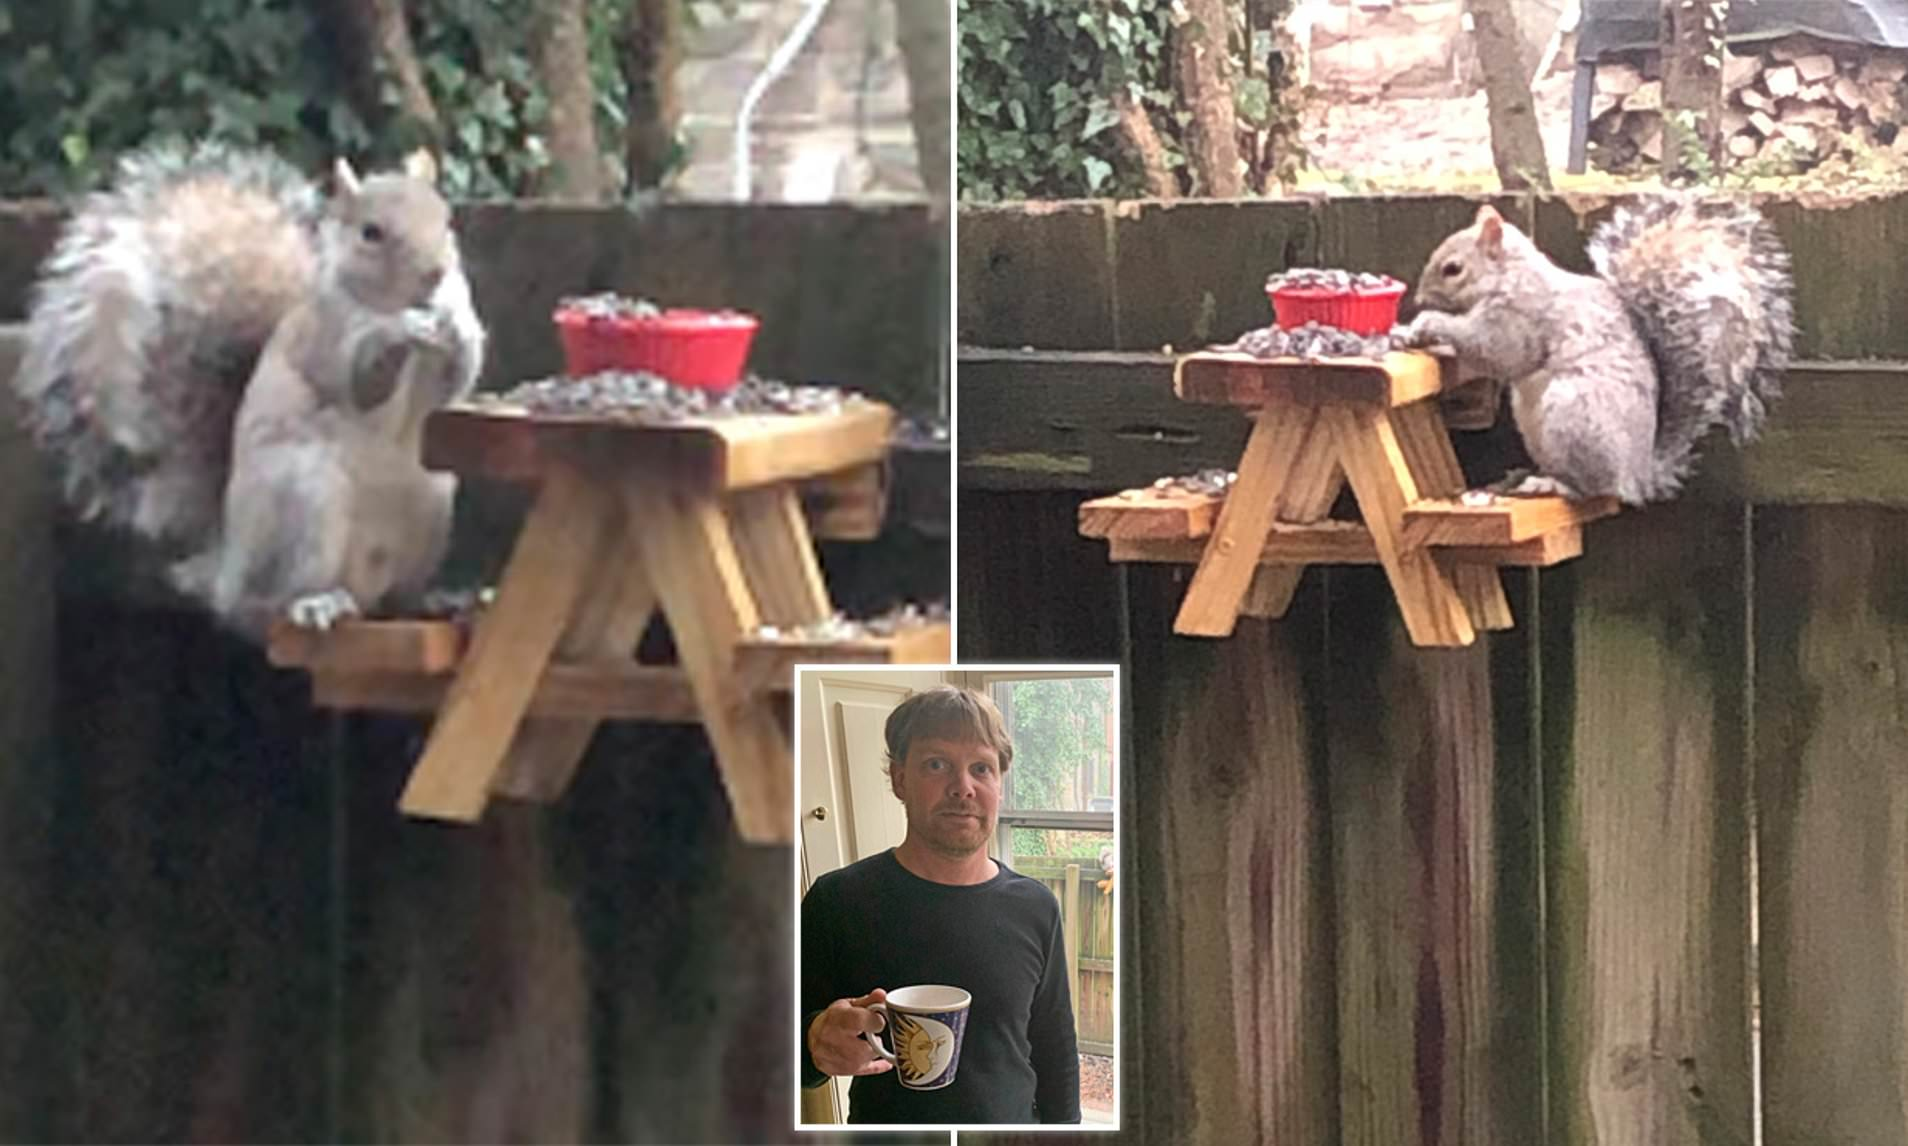 Man Makes Adorable Tiny Picnic Table For Squirrels Living